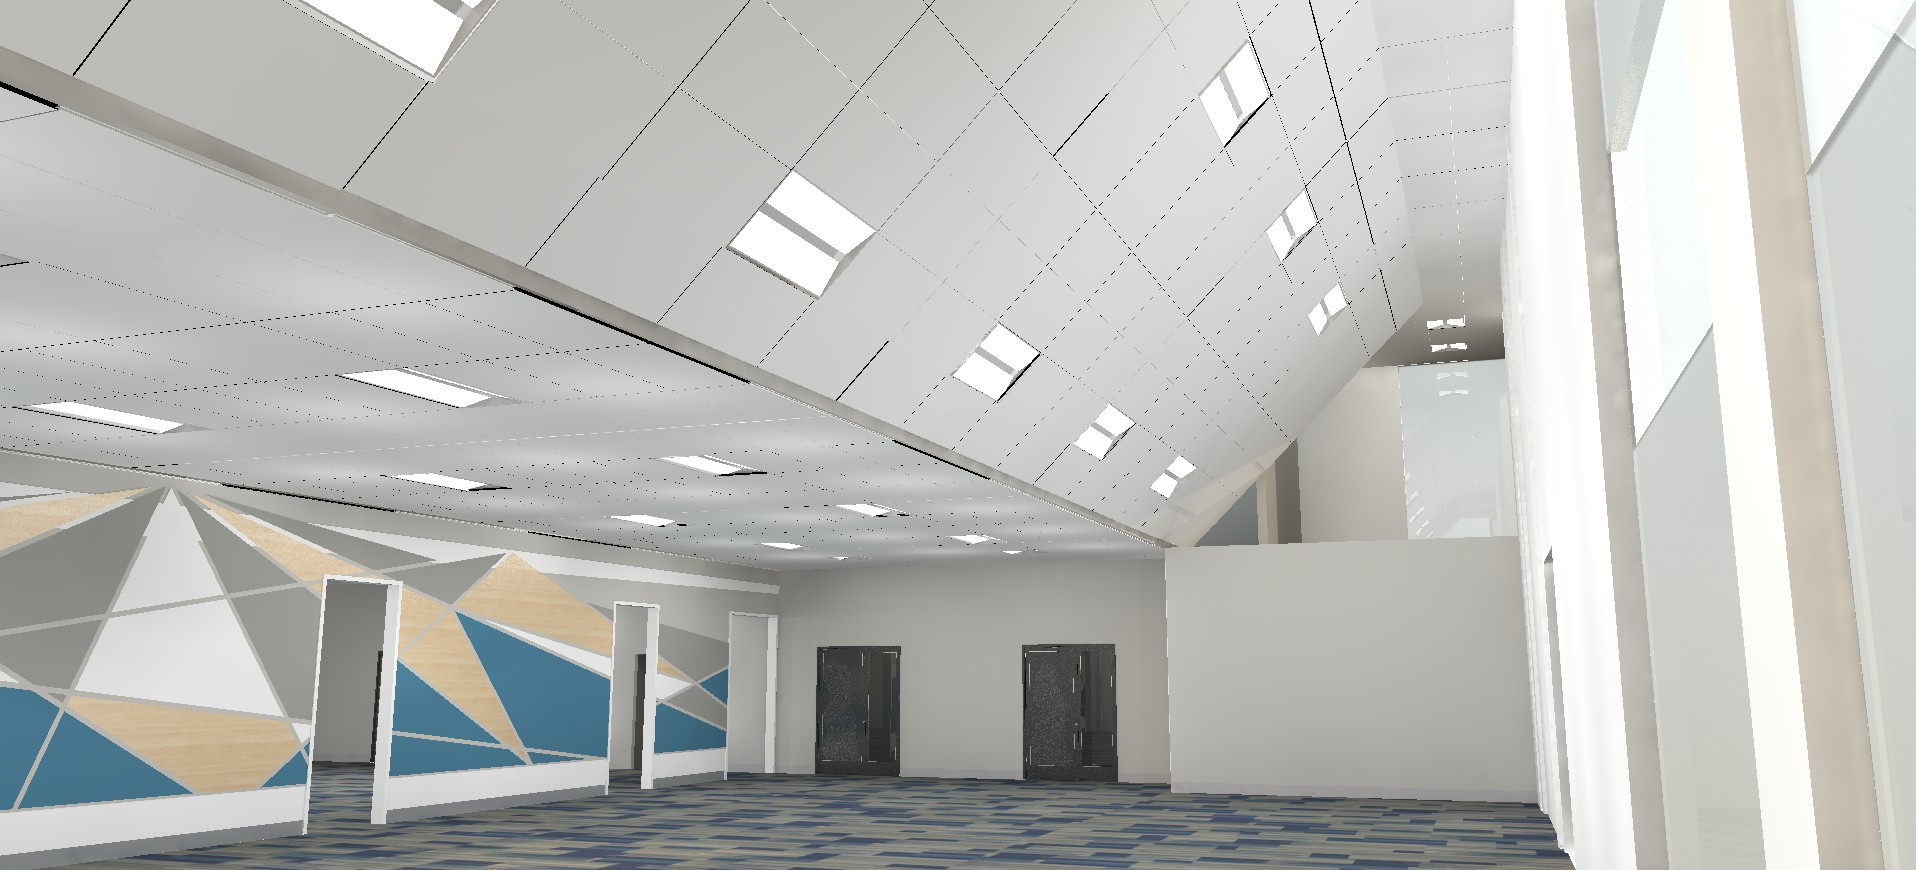 Contech- Proposed Ceiling 2016-10-26 11160000000.jpg